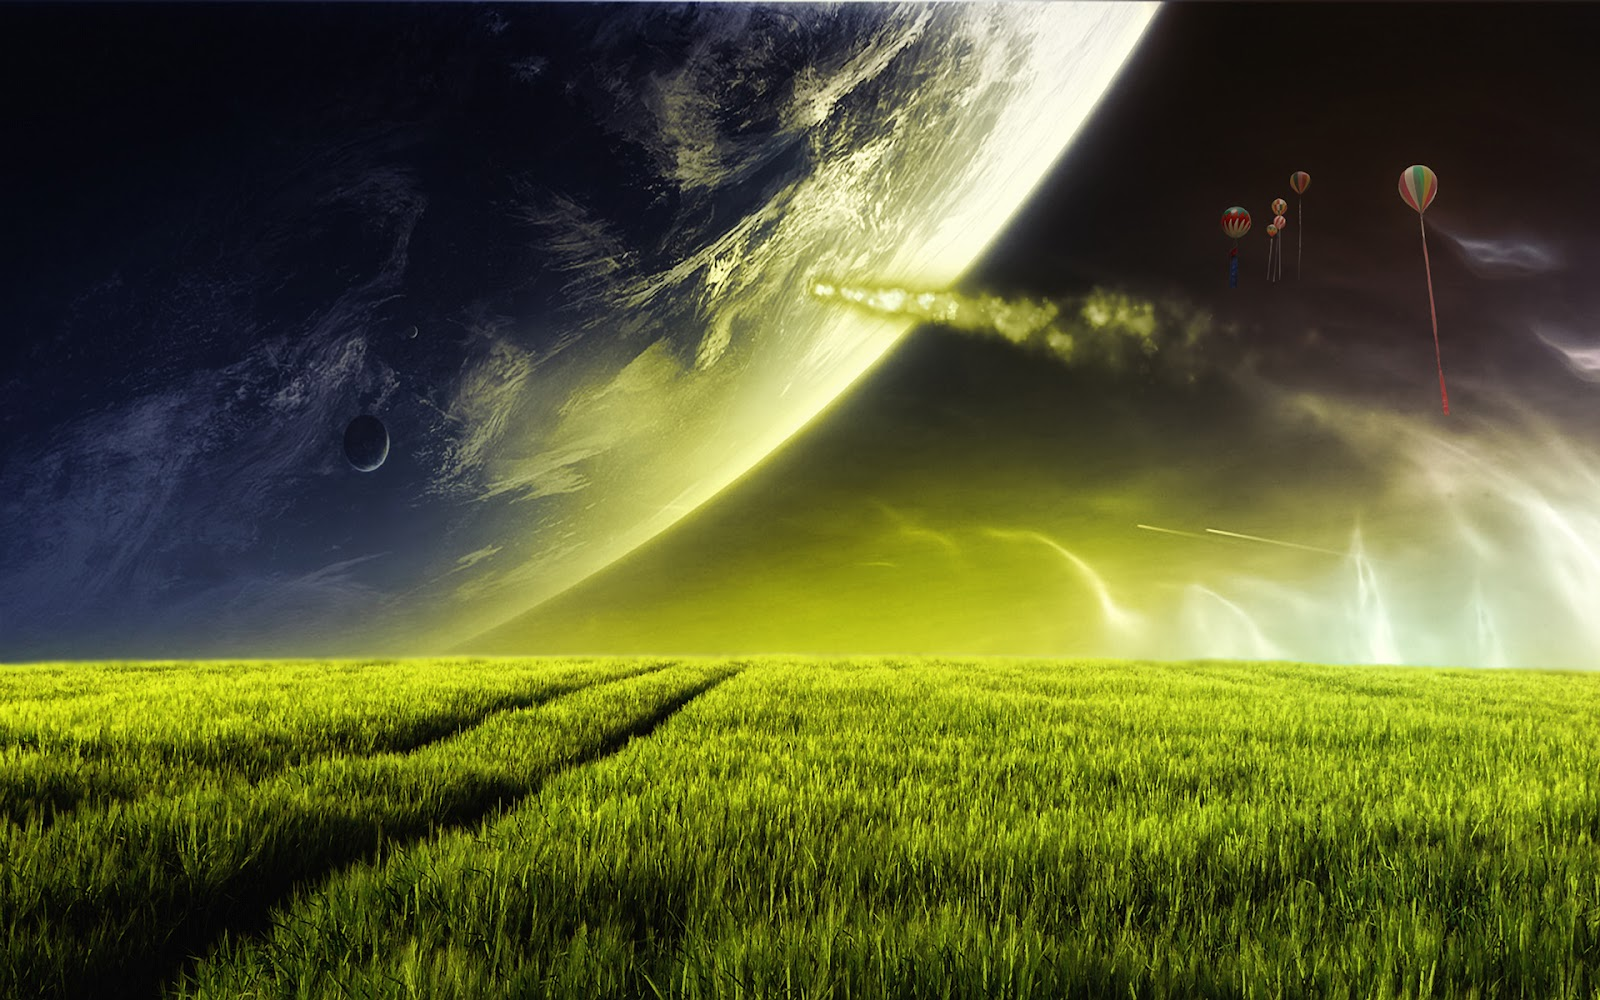 http://4.bp.blogspot.com/-MJaTCdgYkOg/T9smeM2fNdI/AAAAAAAACi8/dO2DAZSH4DQ/s1600/alien_planet-wide-landscape-fields-wallpaper.jpg